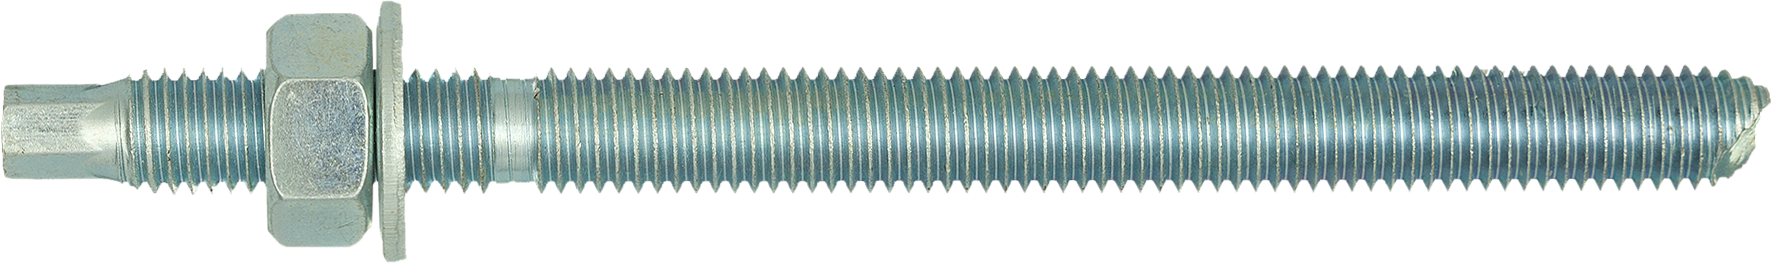 R-STUDS Metric Threaded Rods - Steel Class 8.8